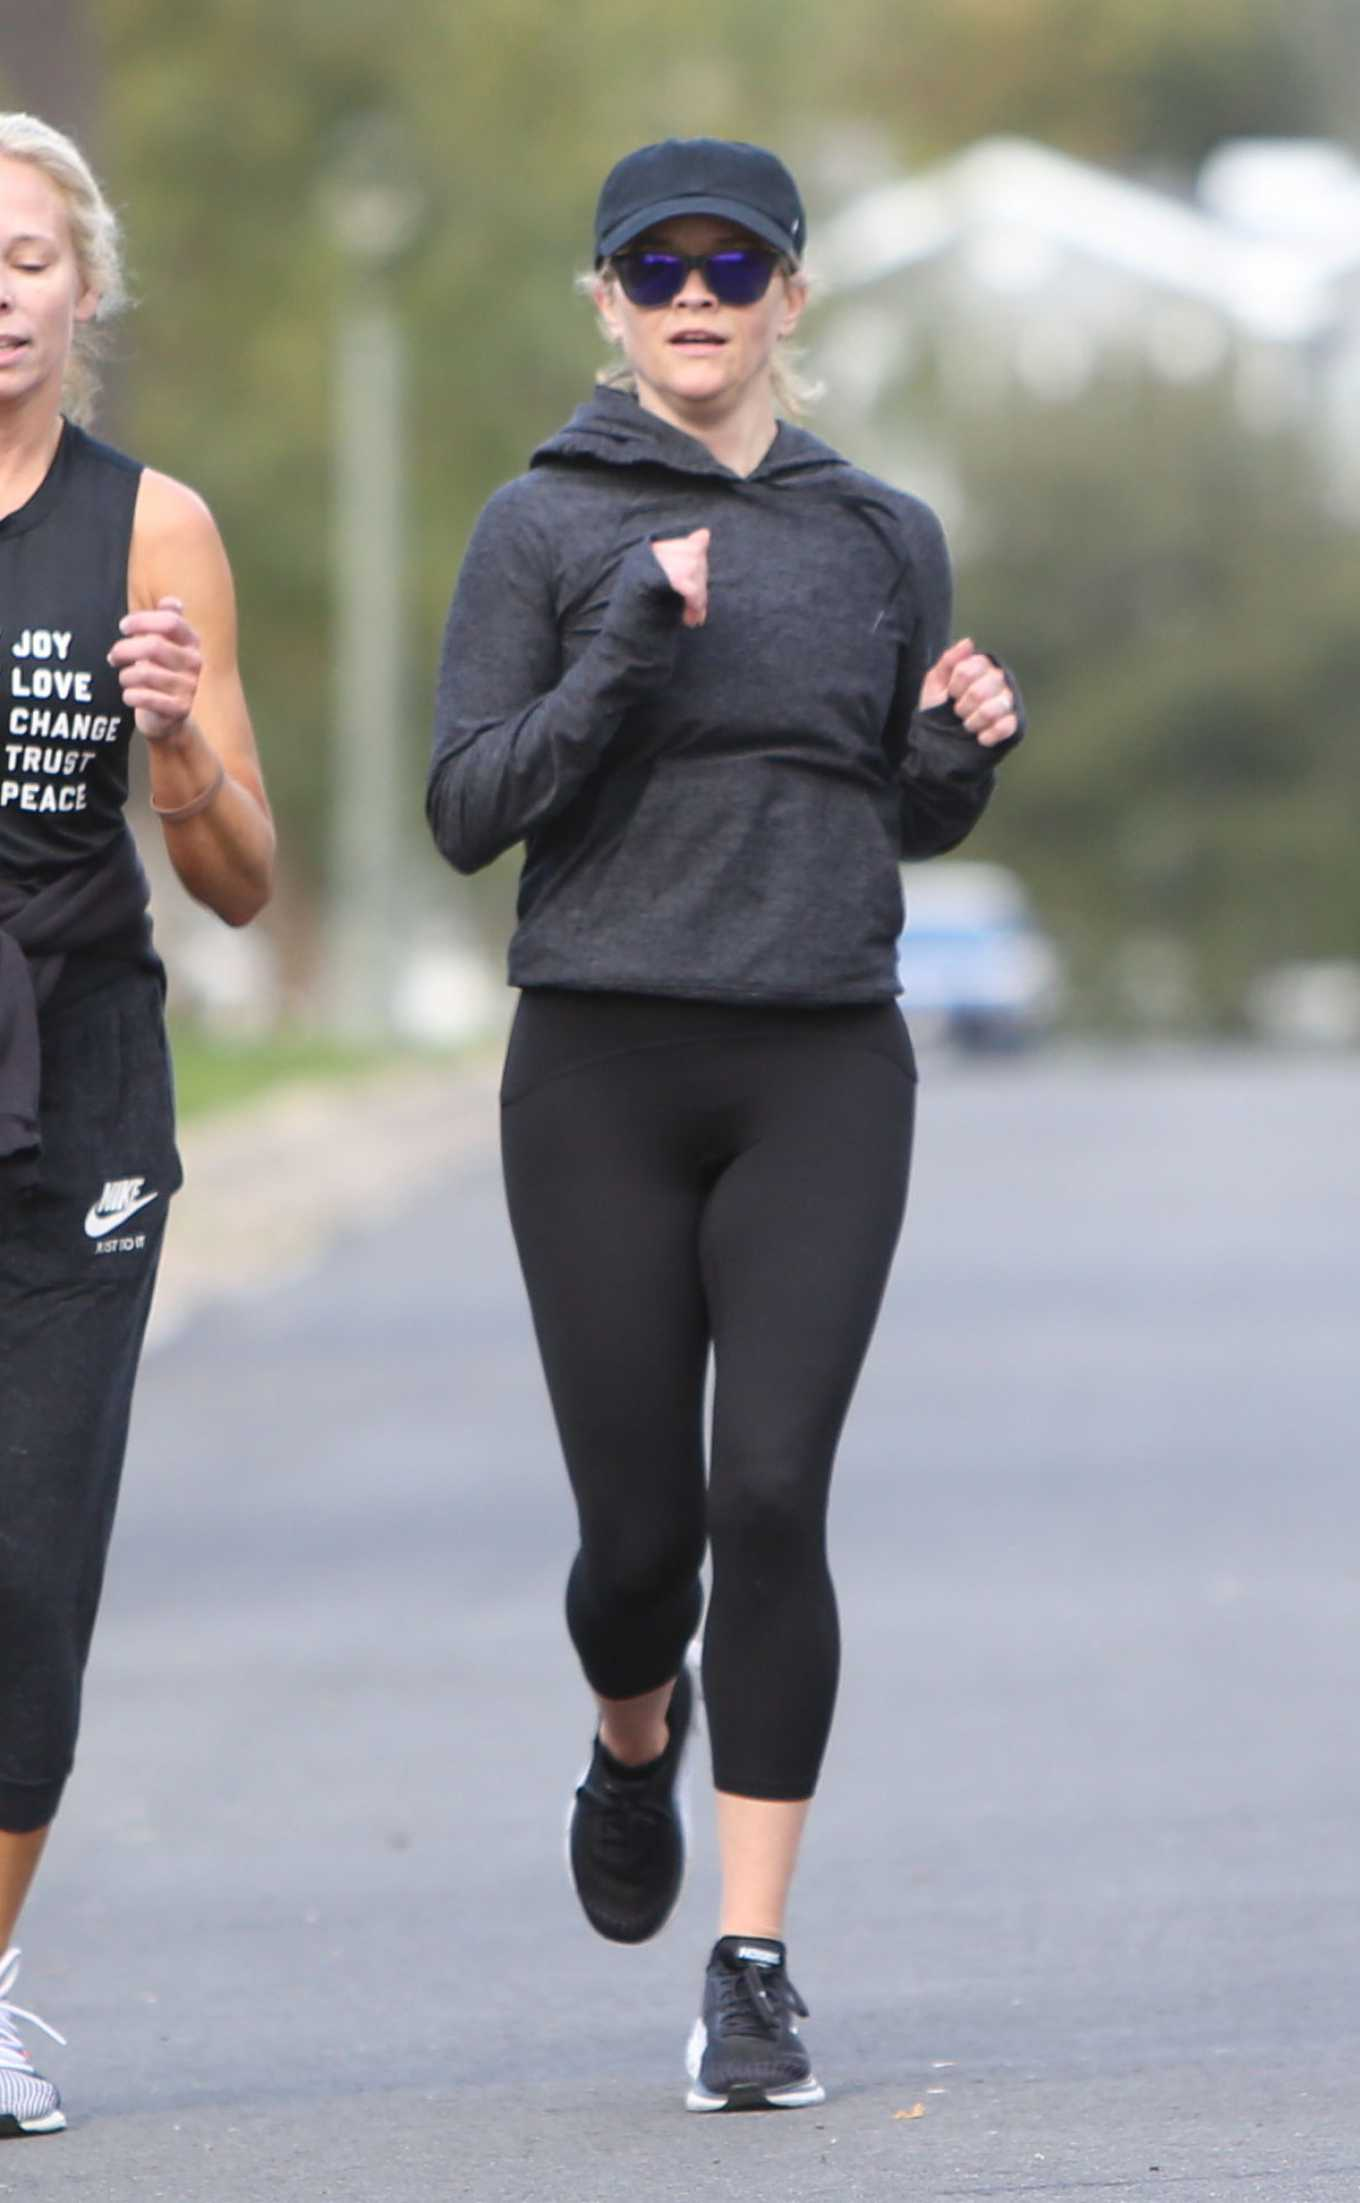 Reese Witherspoon - Jogging candids with a friend in Los Angeles